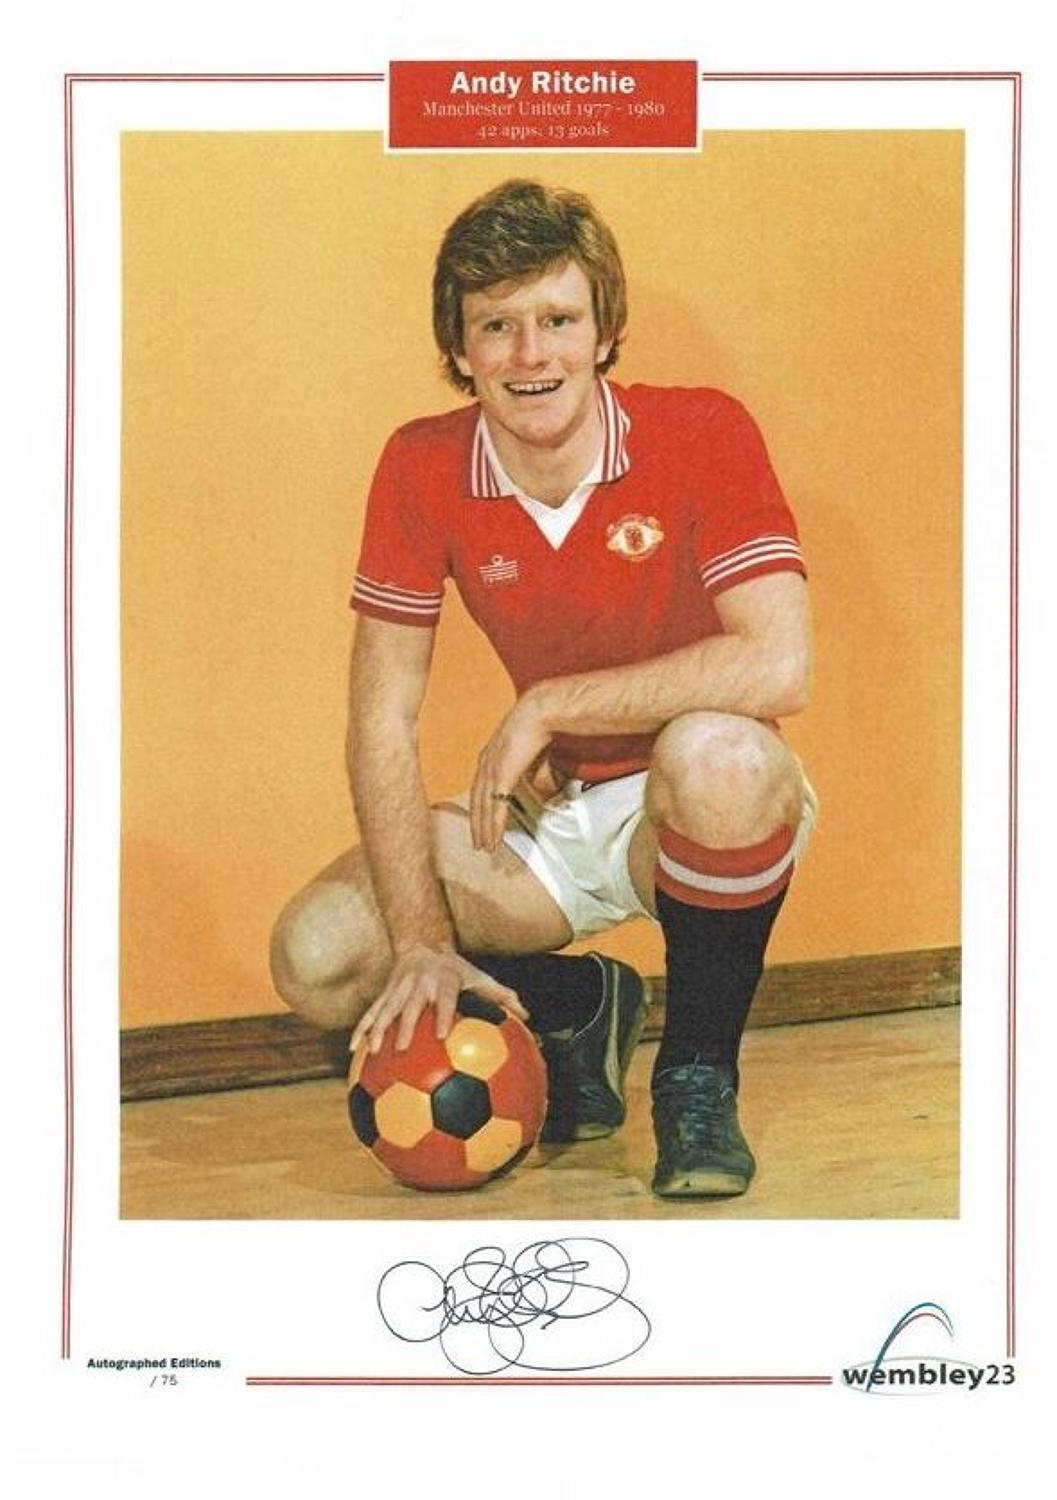 Andy Ritchie,Manchester United